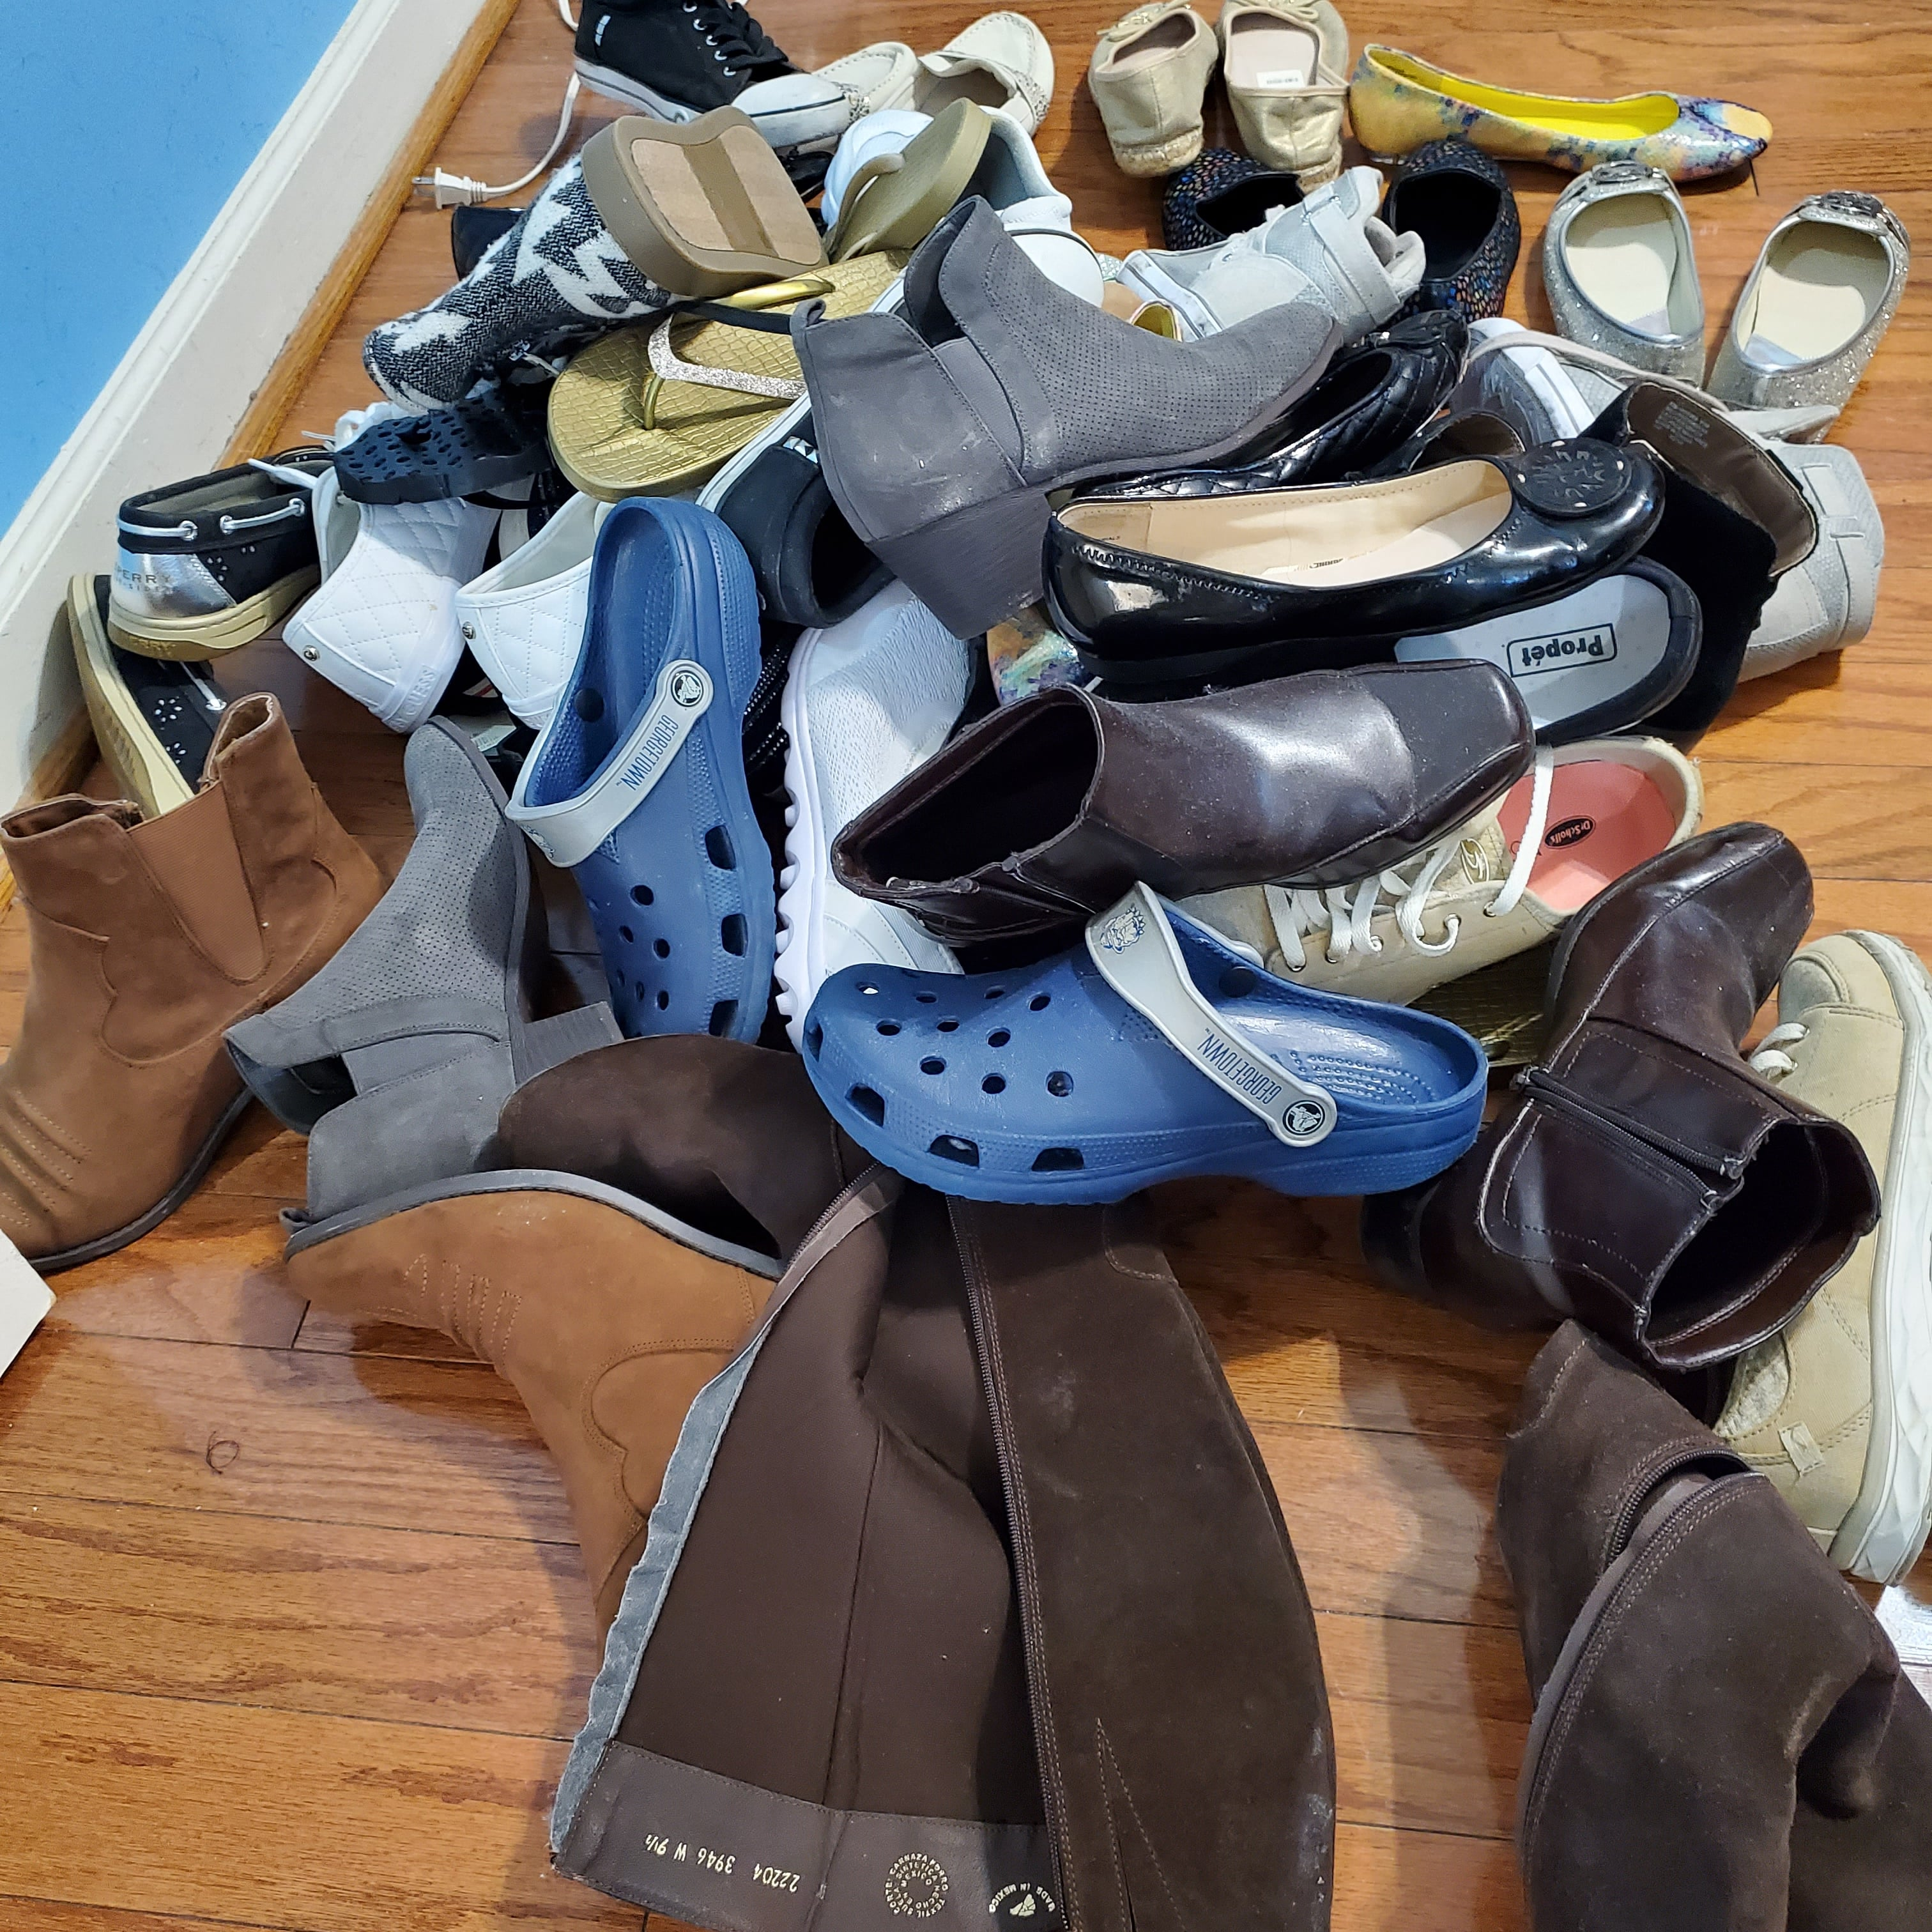 Sheri had surgery on her foot for lymphedema, all went well, but now none of her shoes fit! They will go to good homes, 3-21.